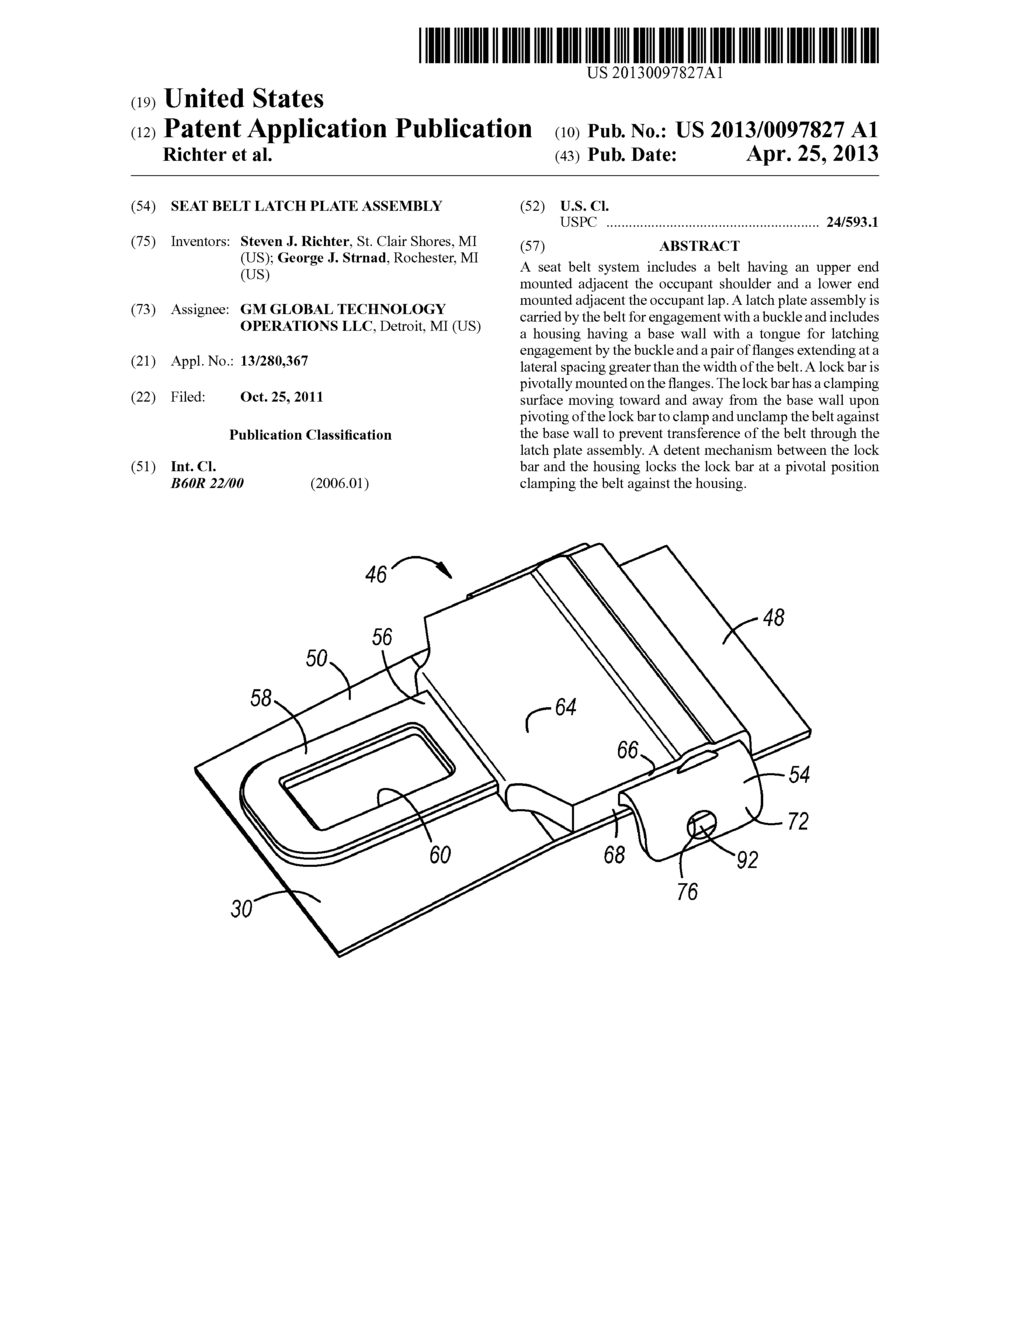 seat belt latch plate assembly diagram, schematic, and image 01 Naza Wiring Diagram